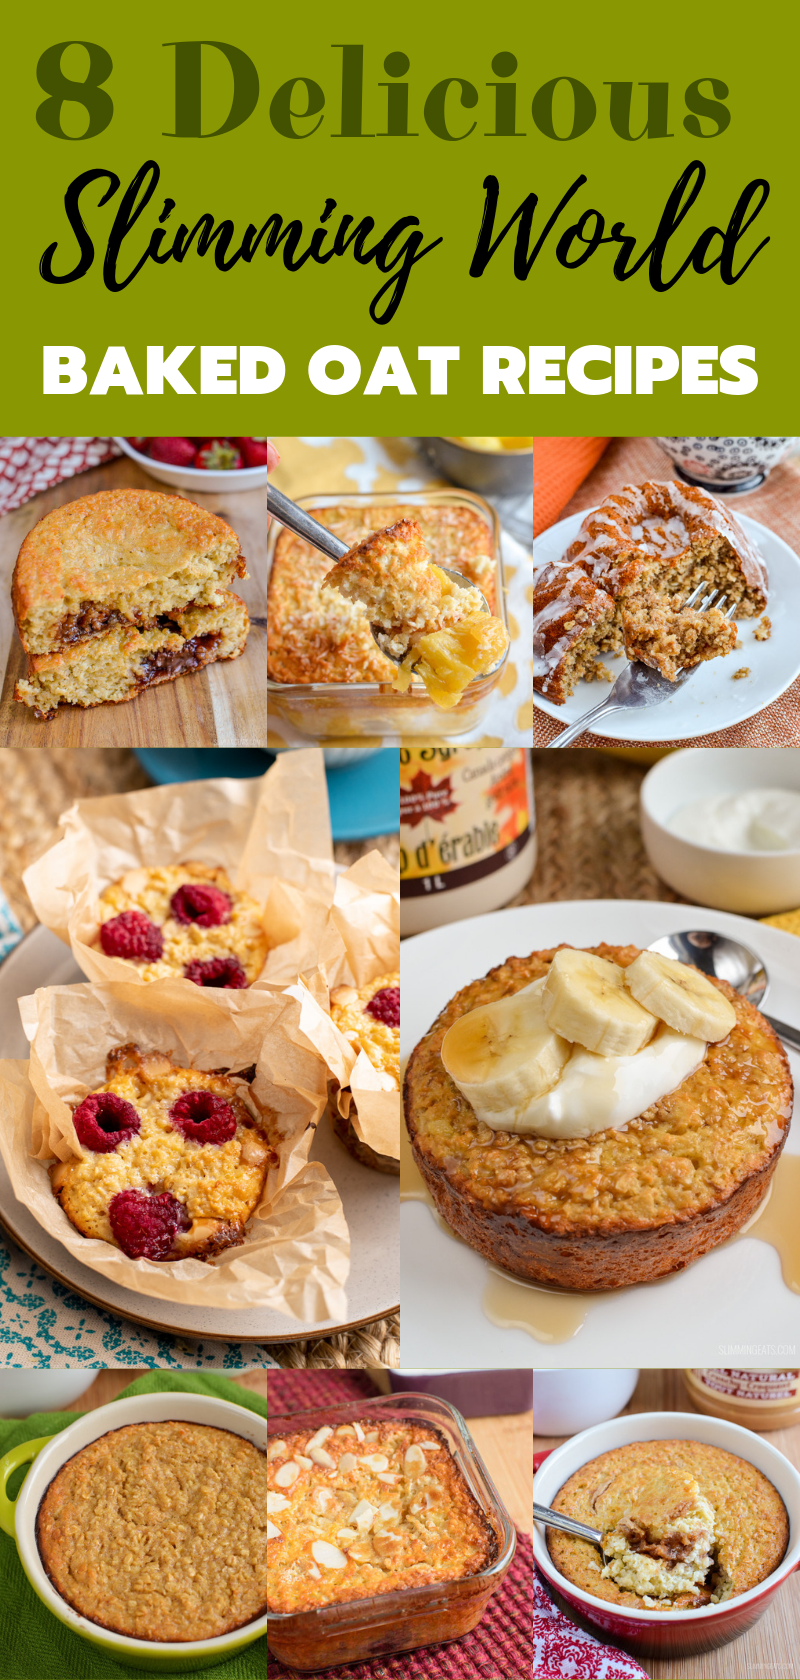 8 baked oat recipes pin image